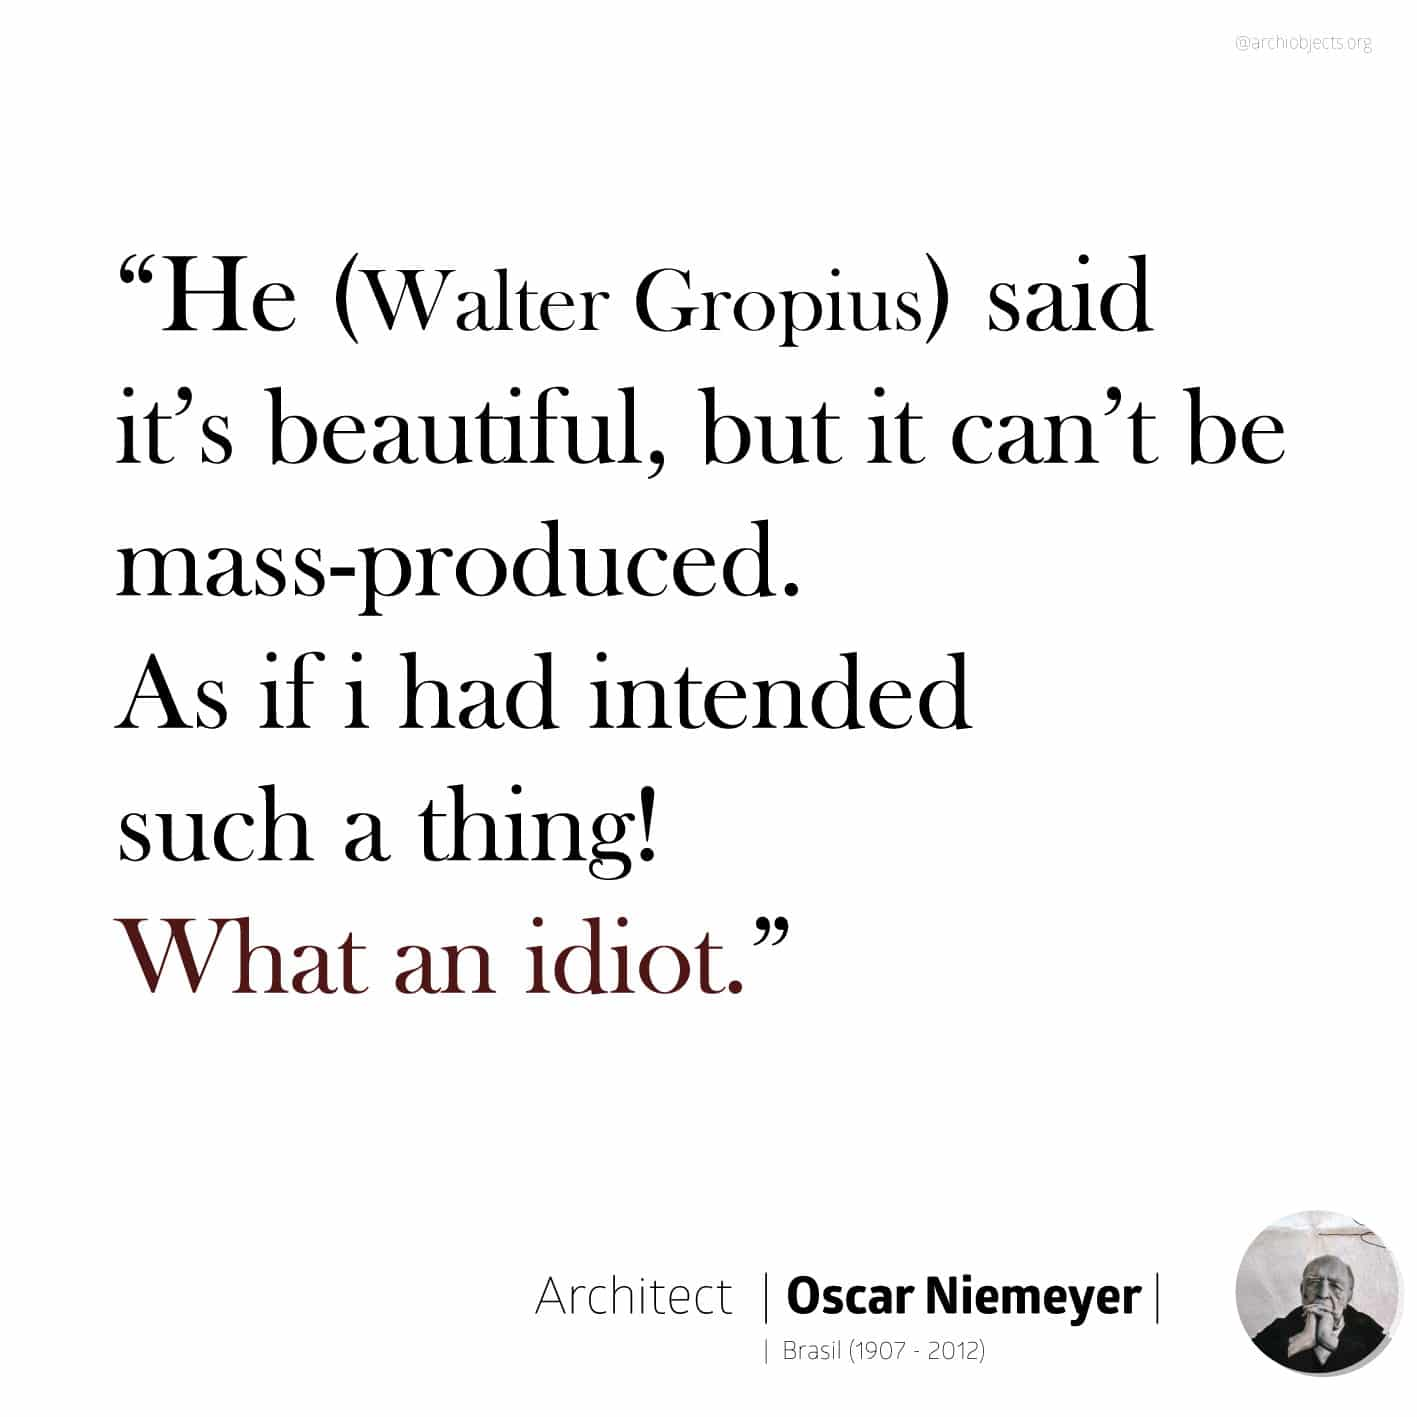 oscar niemeyer quote Architectural Quotes - Worth spreading Architects' voice